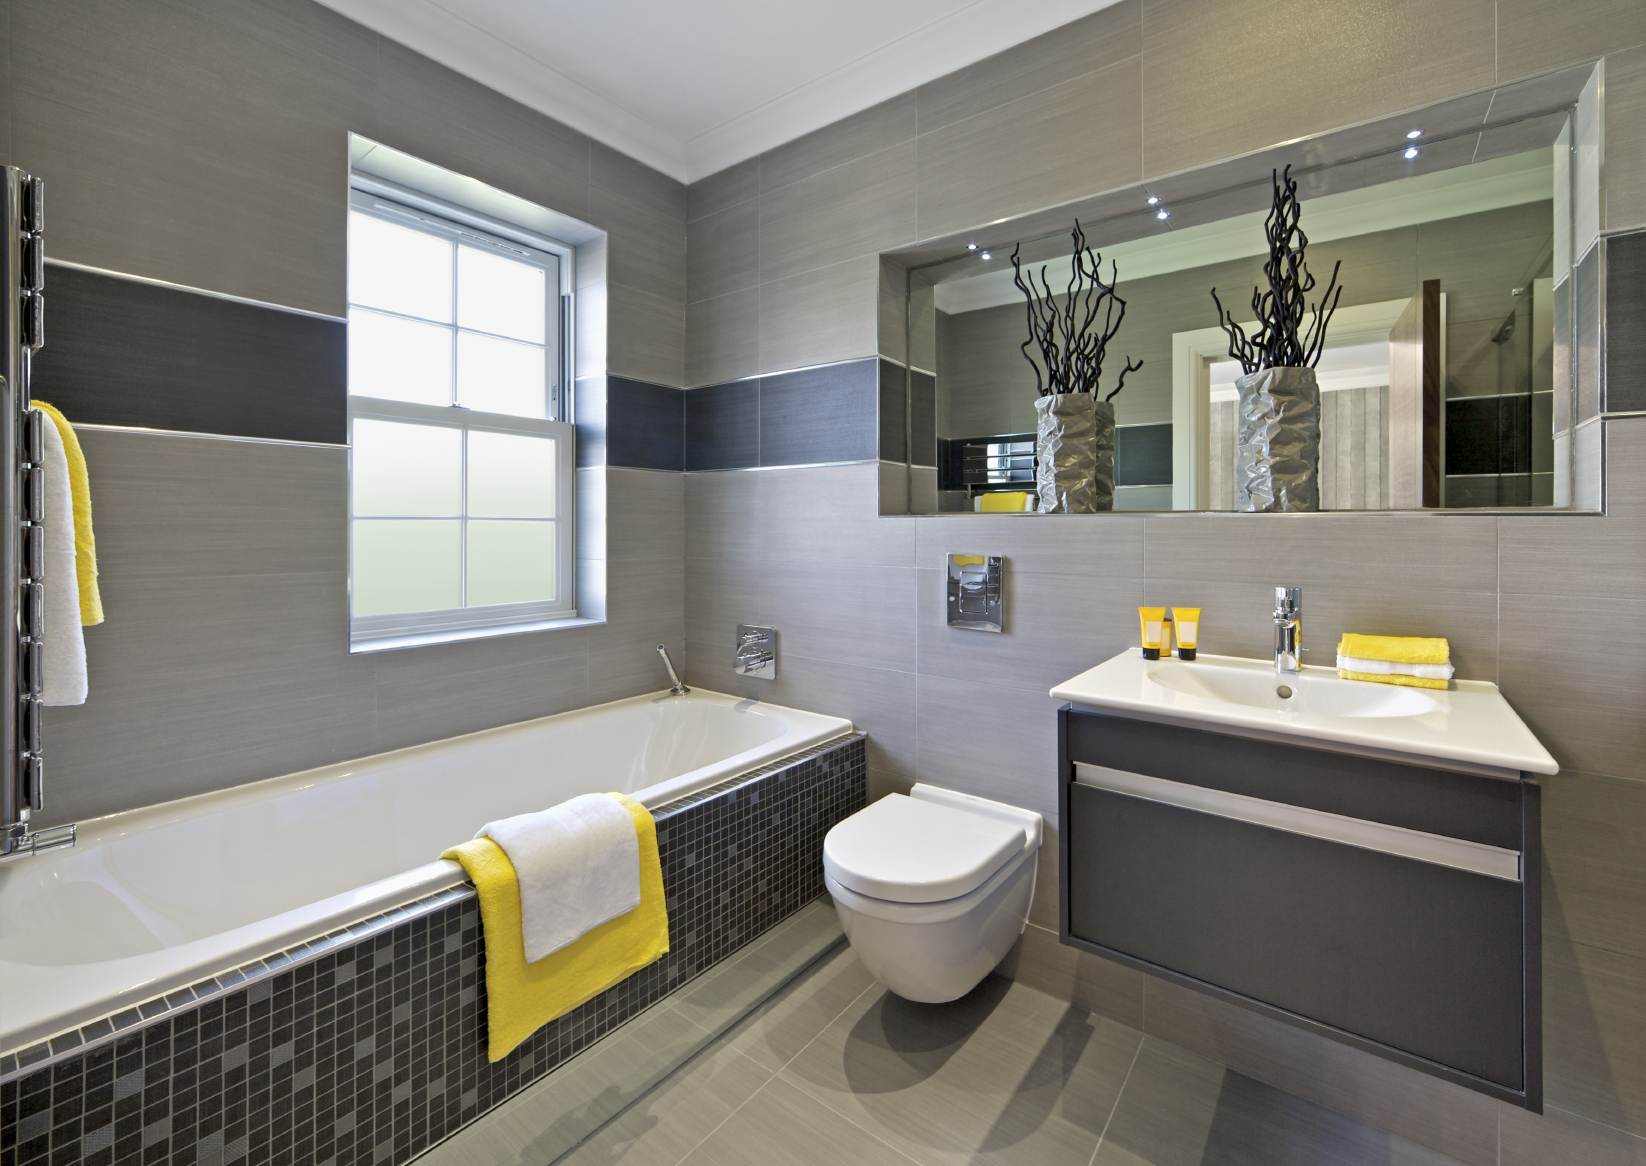 Small Bathroom Remodel Before And After Budget Ideas